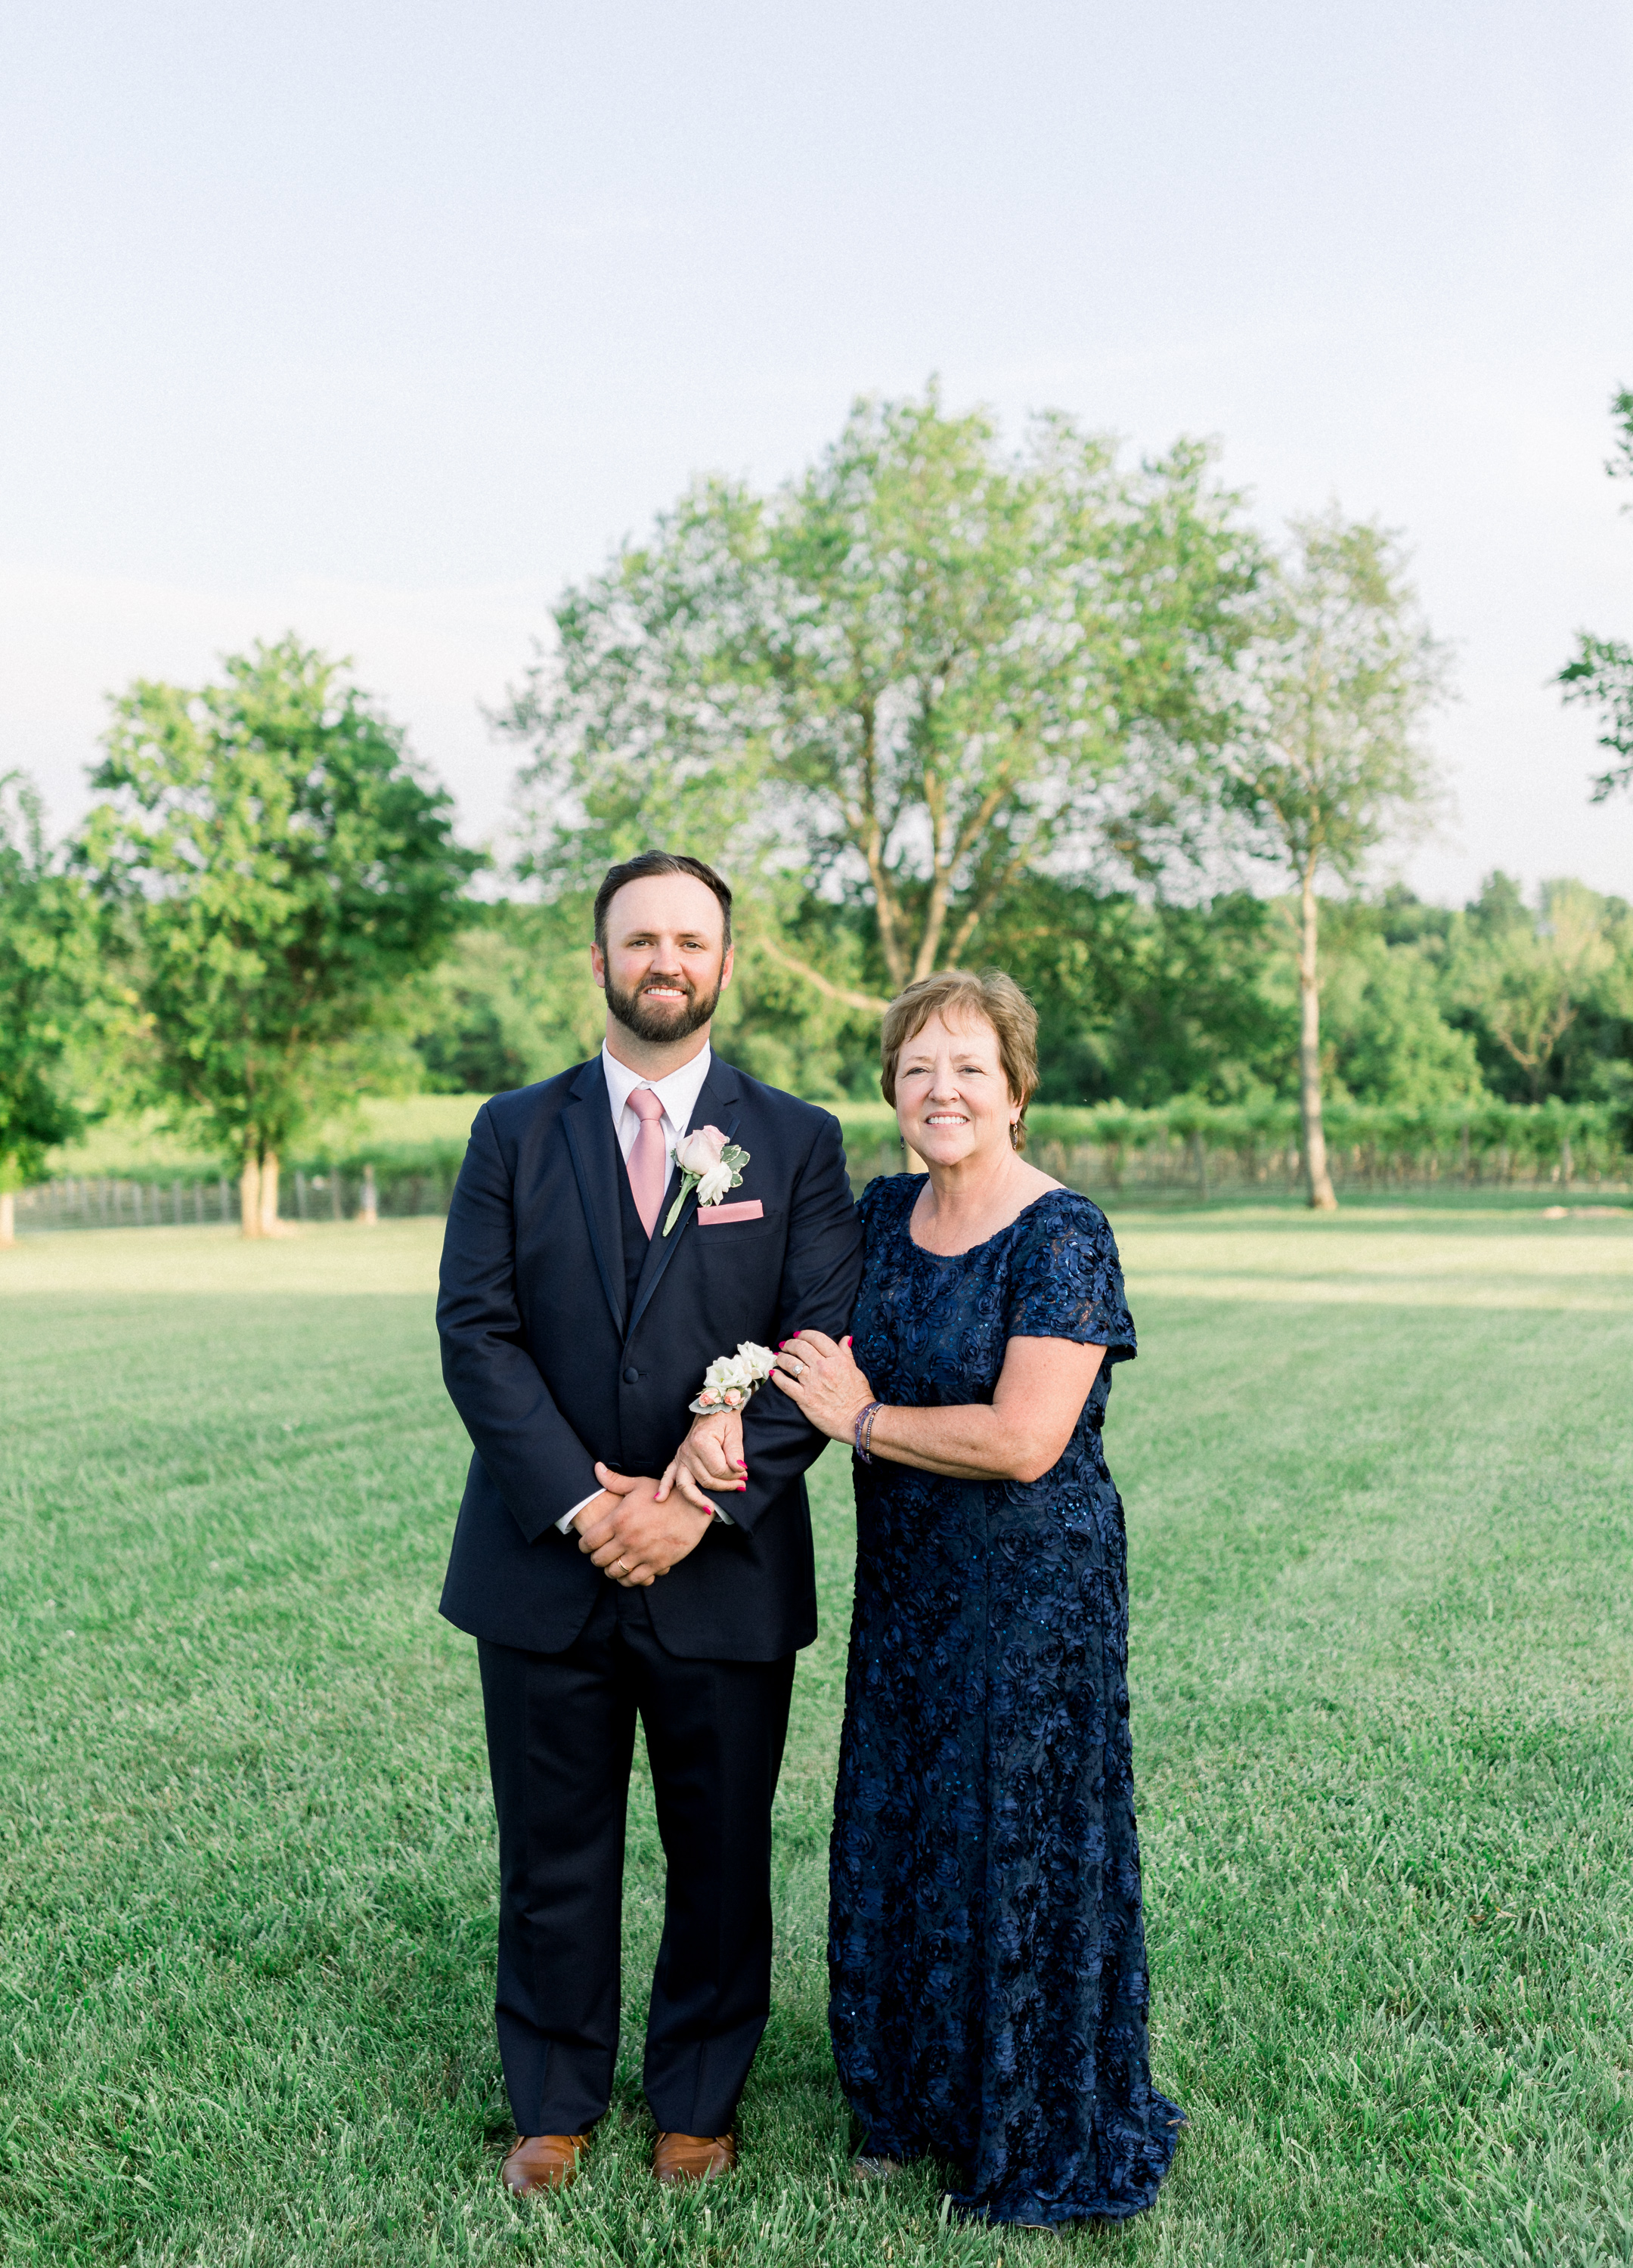 Molly + Dan wedding 6-7-19 (638 of 916).jpg